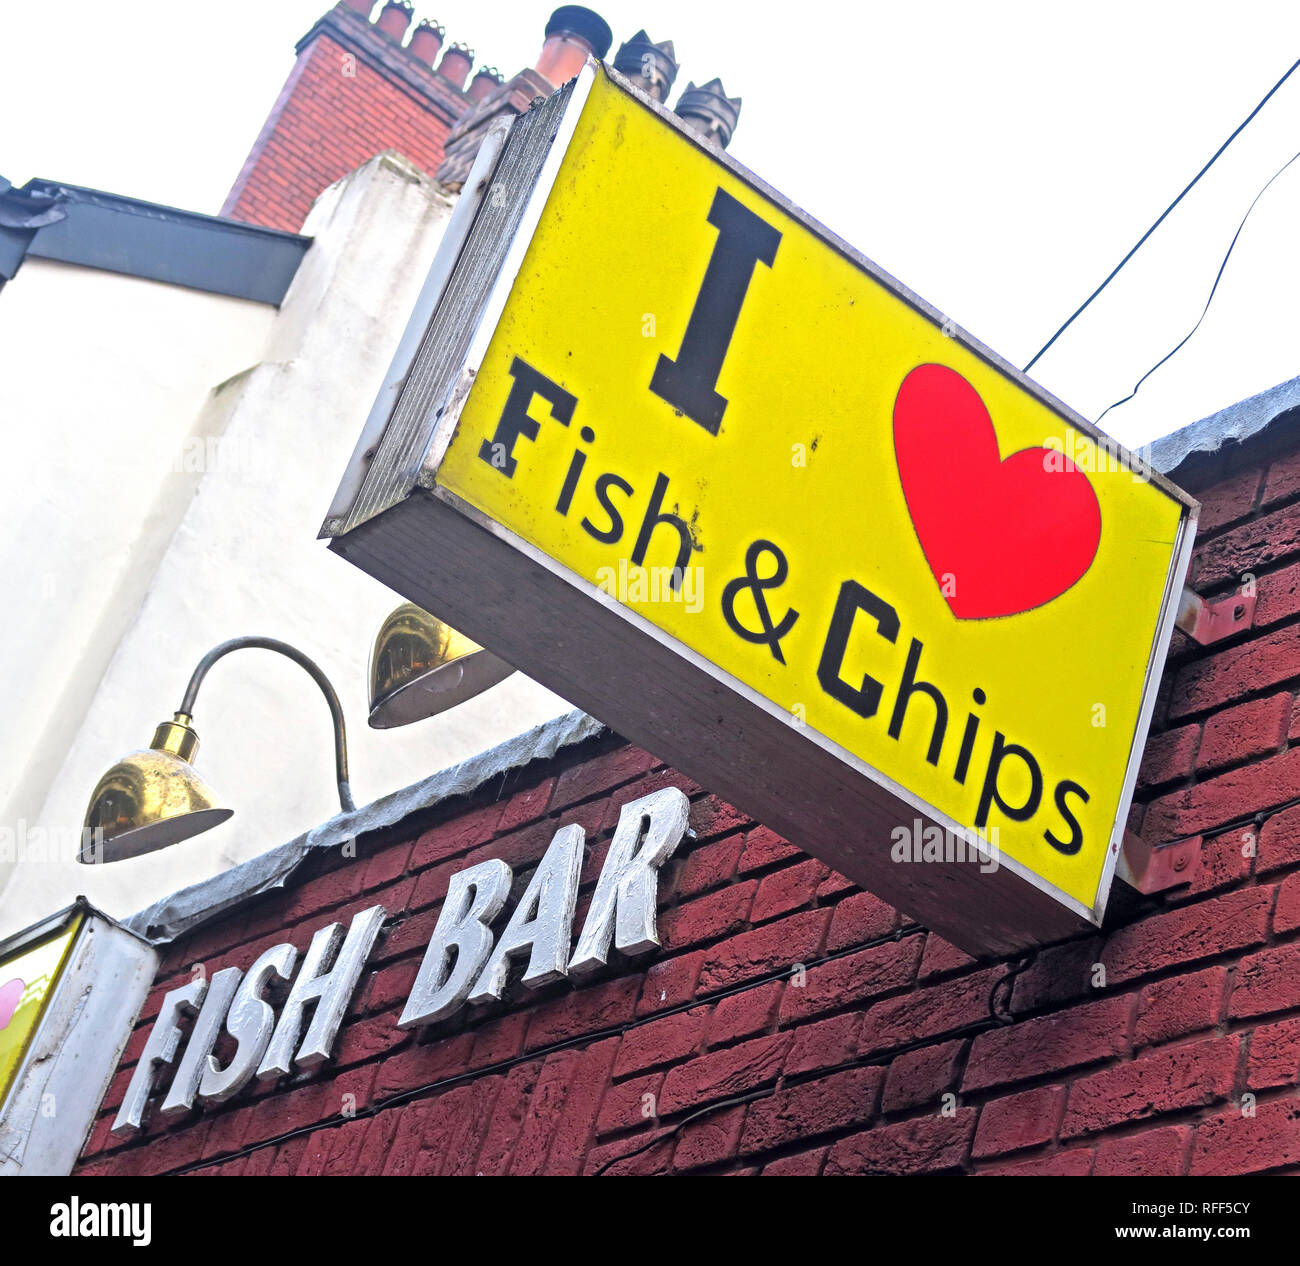 I heart Fish and Chips sign , I love Fish and Chips, Fish Bar, Bloom St, Krispy Fried Fish & Chips, Gay Village, Manchester, Lancashire, England, UK - Stock Image